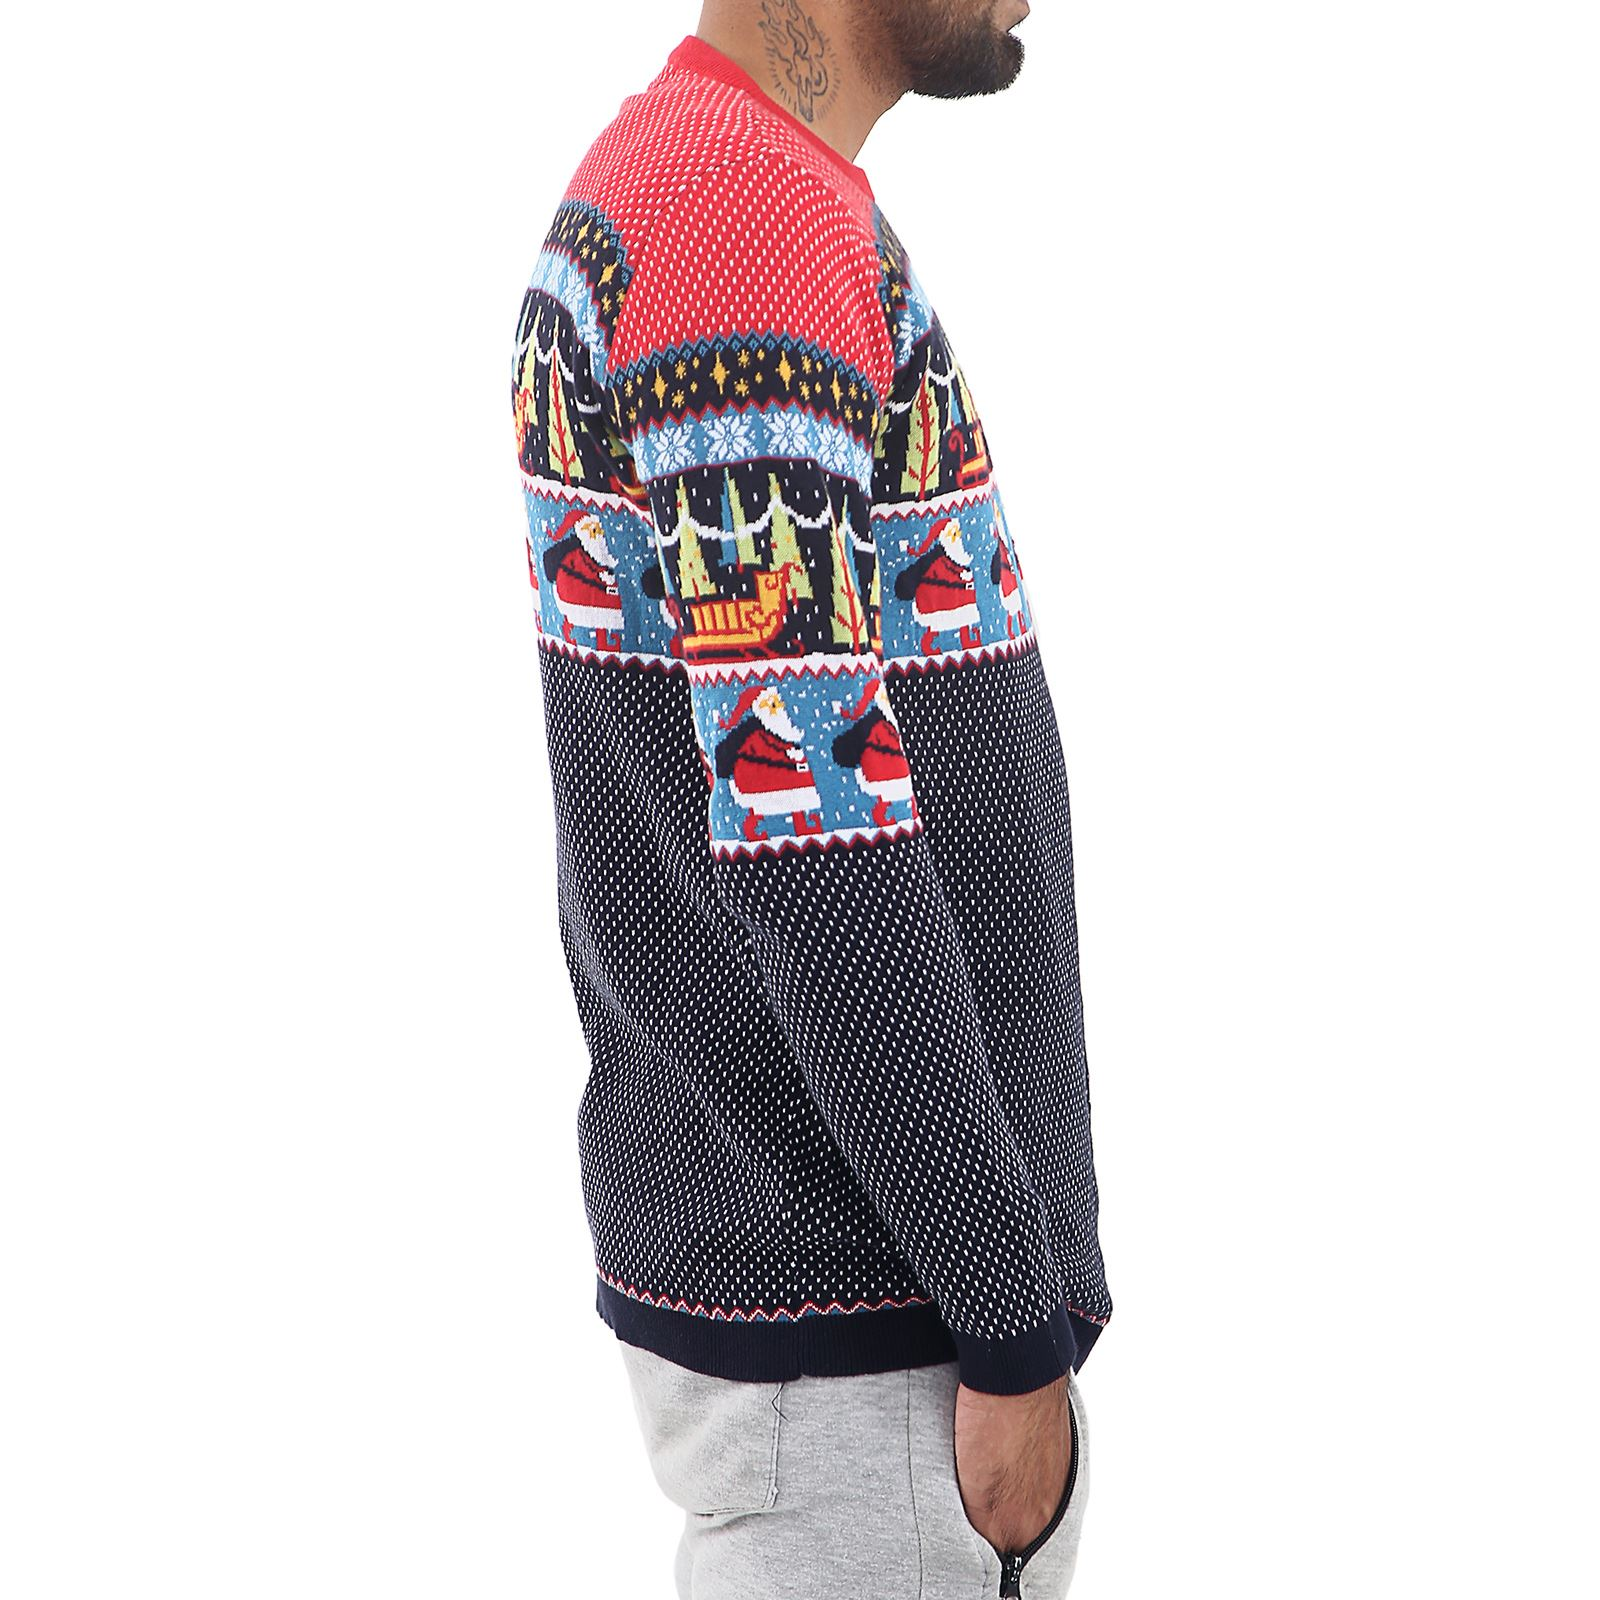 Mens-Ladies-Ex-Store-Matching-Christmas-Sweater-Jumper-Sweatshirt-Xmas-His-Hers thumbnail 3